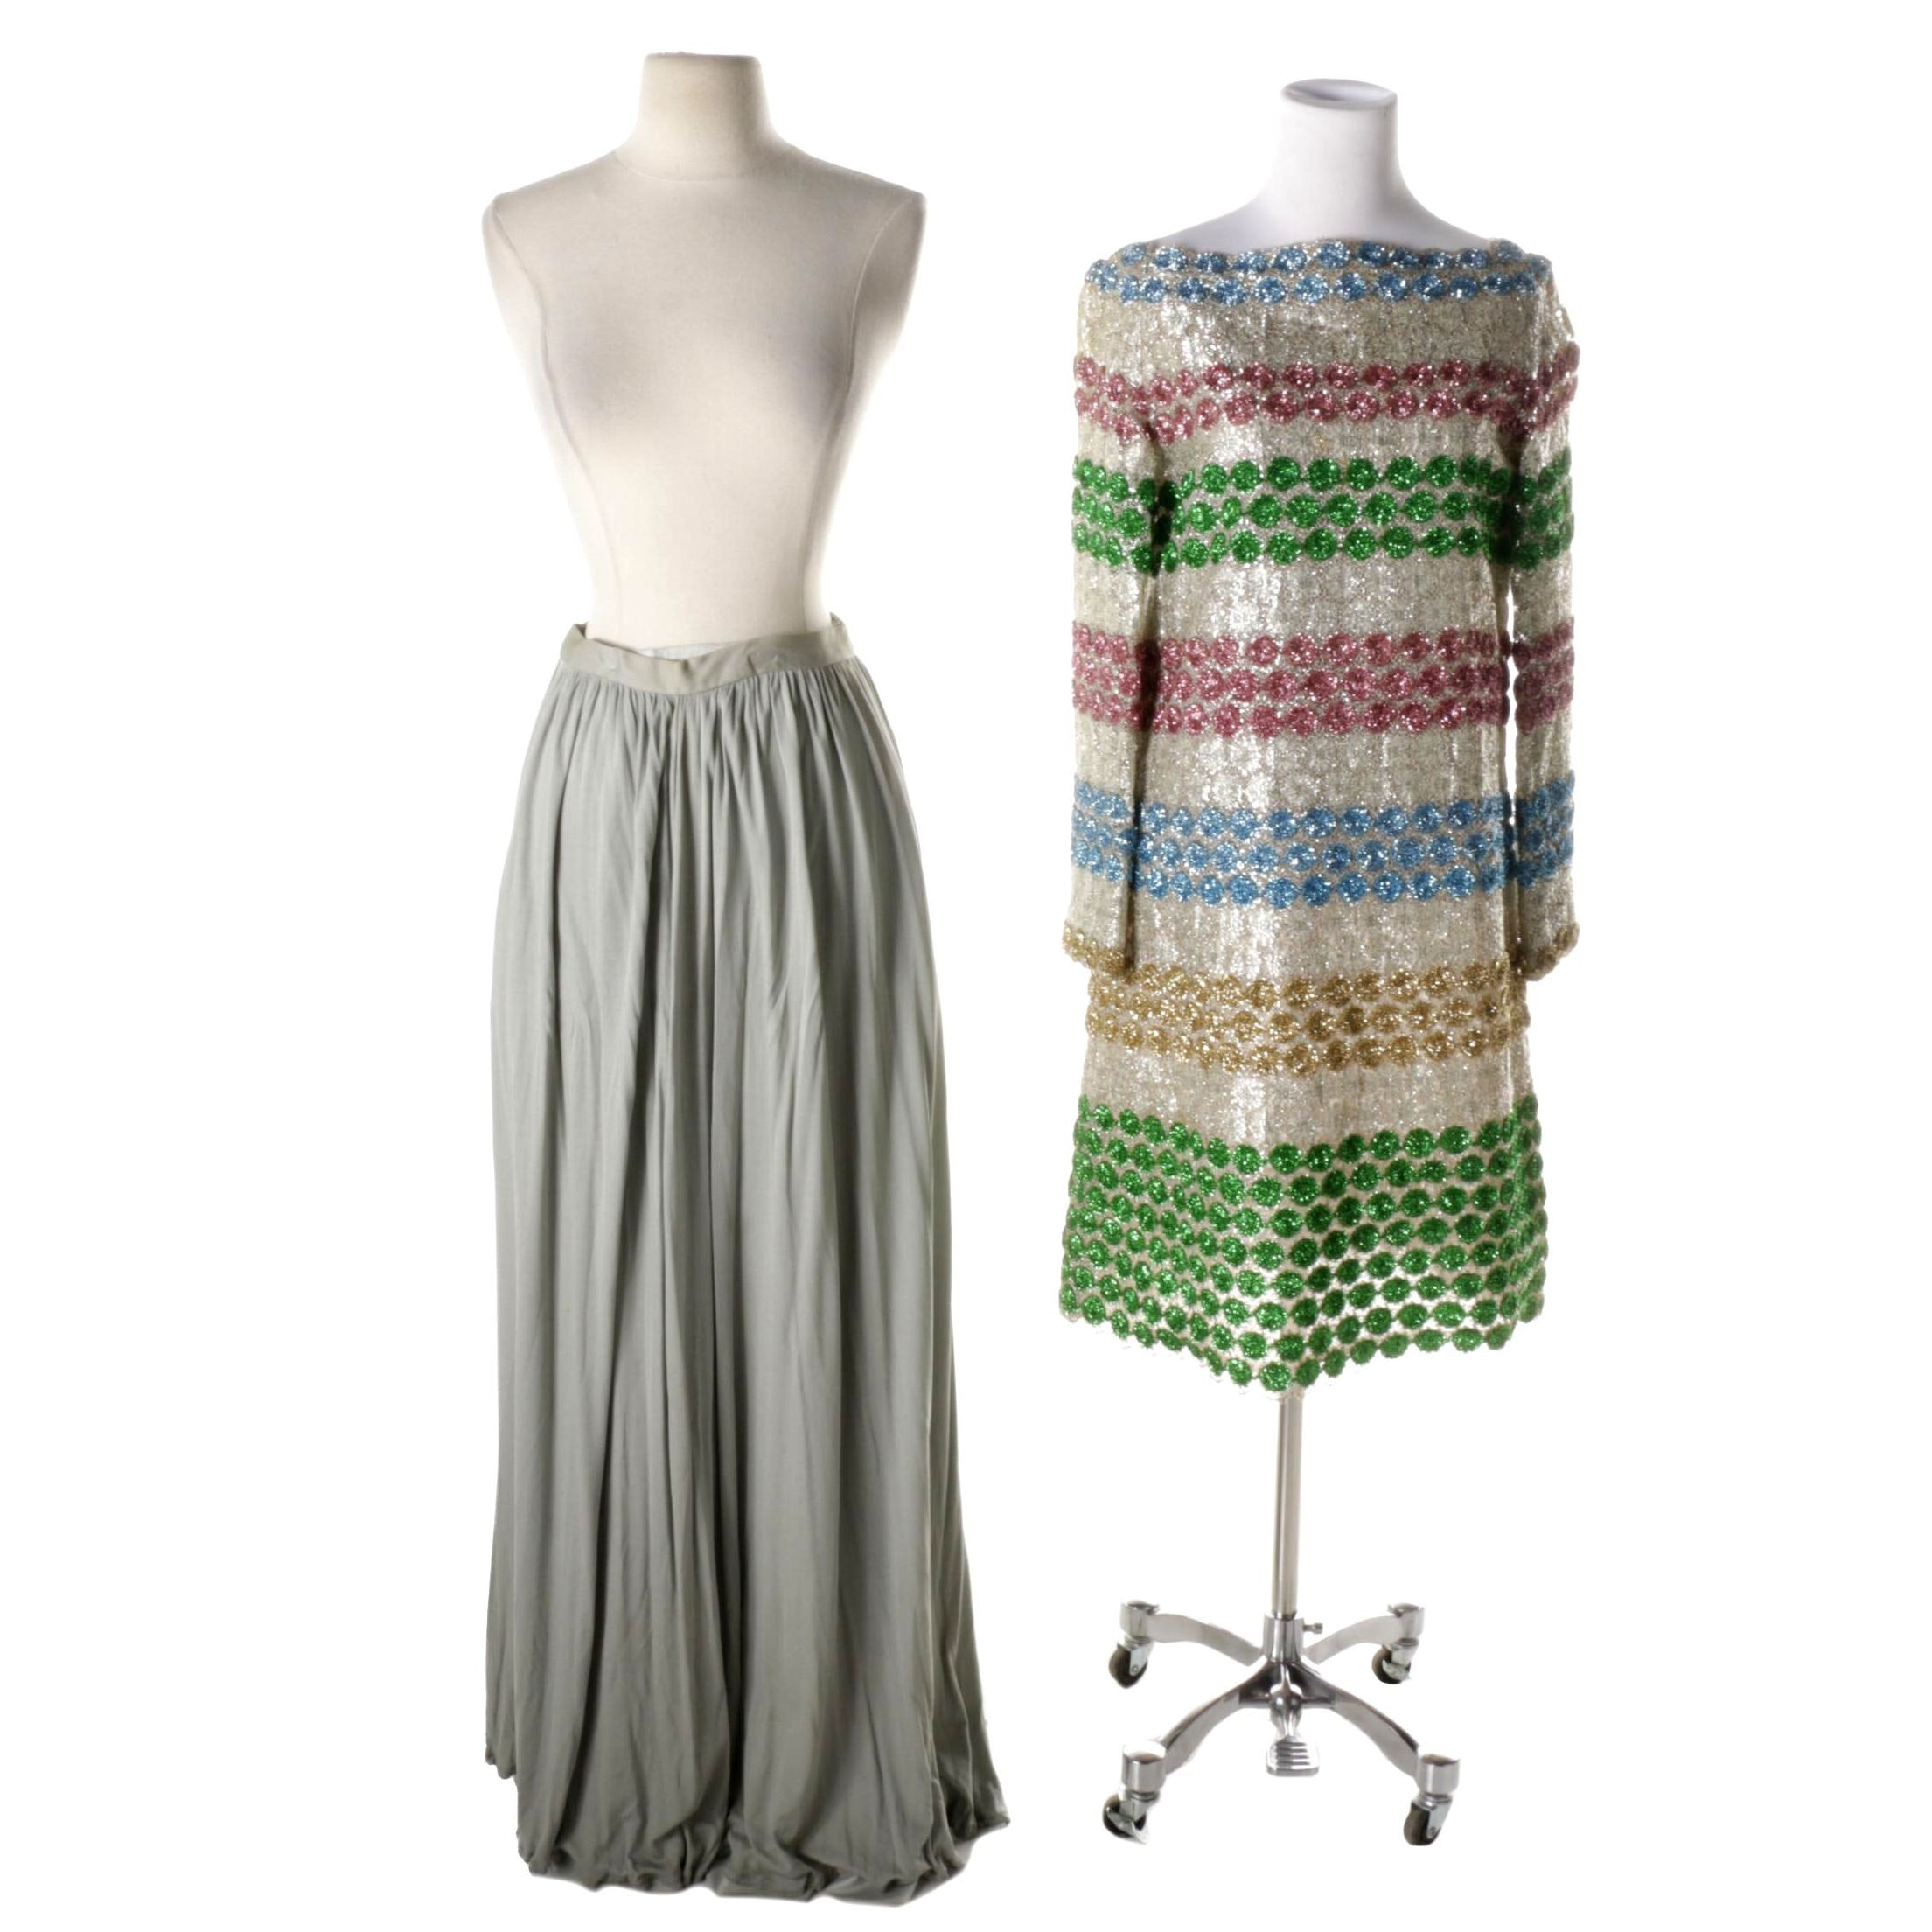 Women's Vintage Mod Cocktail Dress and Maxi Skirts